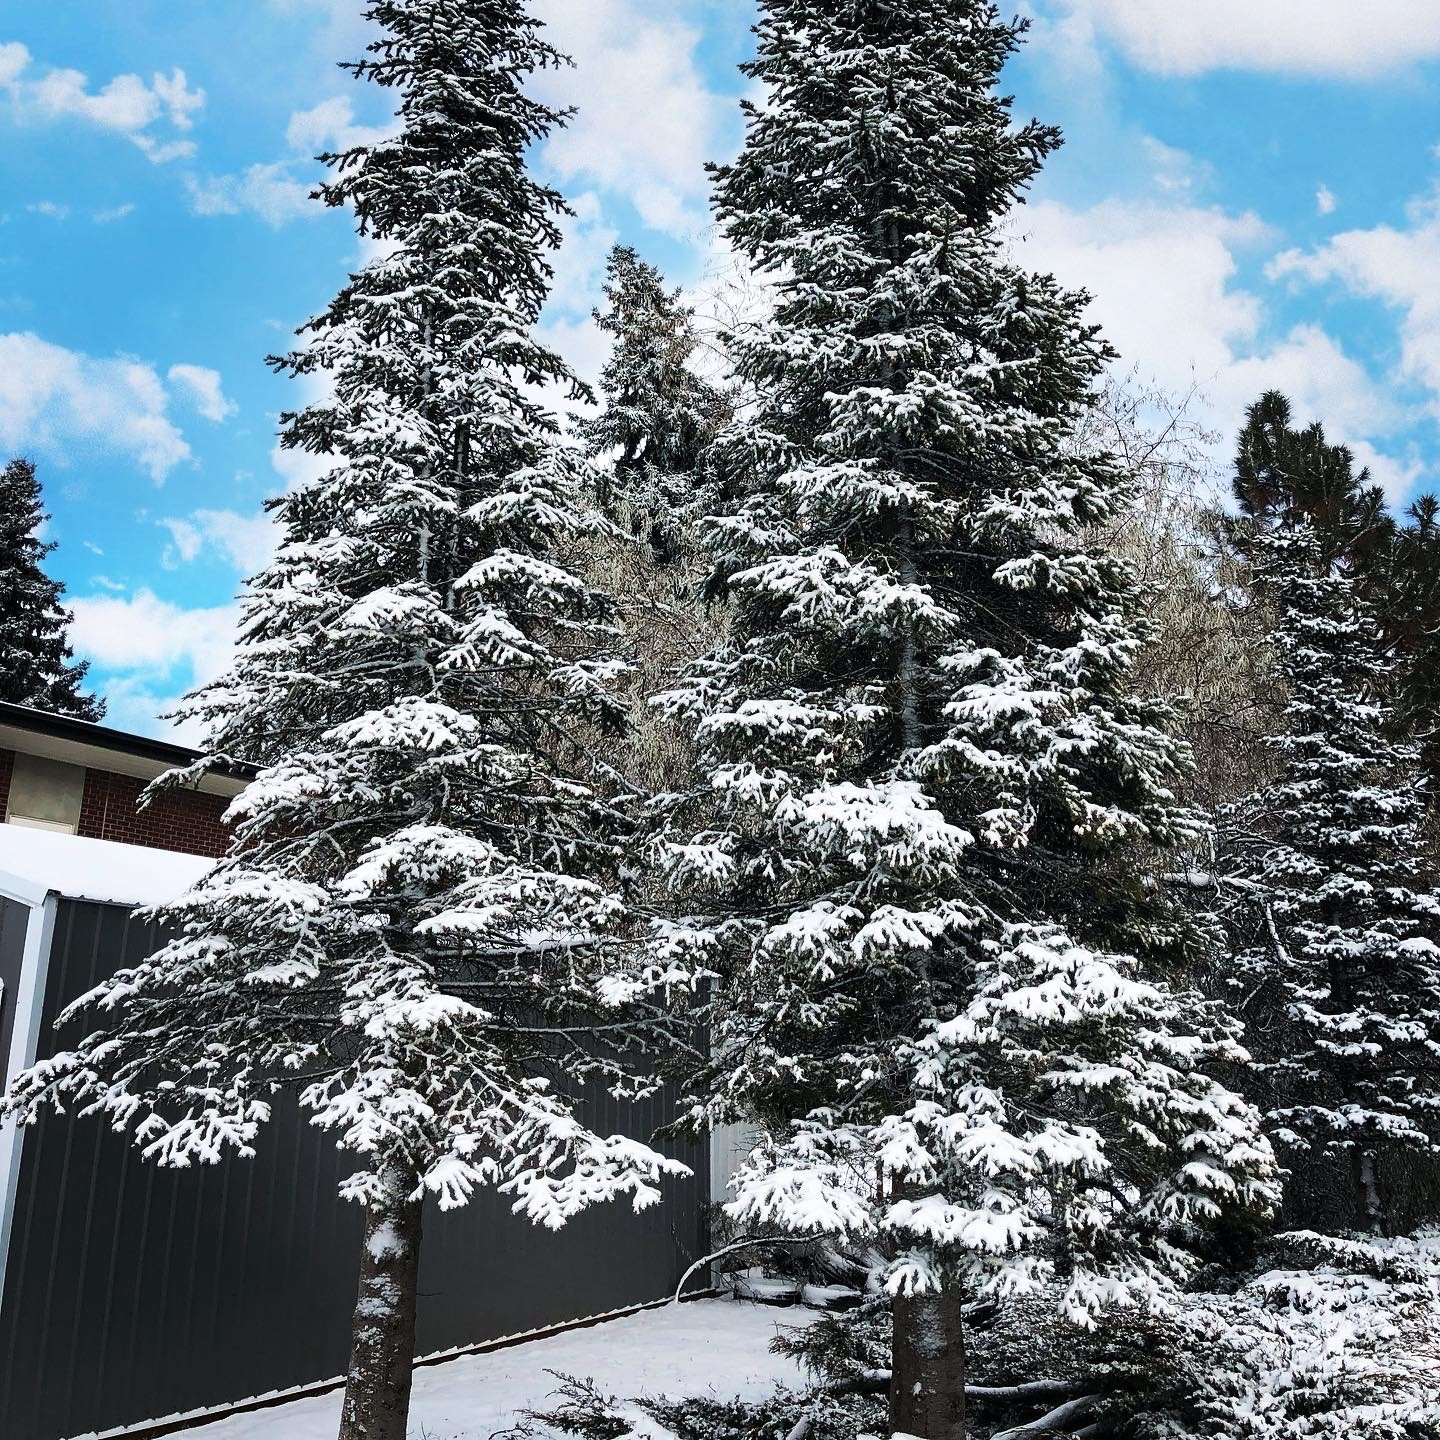 December 2019 Pictures from Eastern Washington University